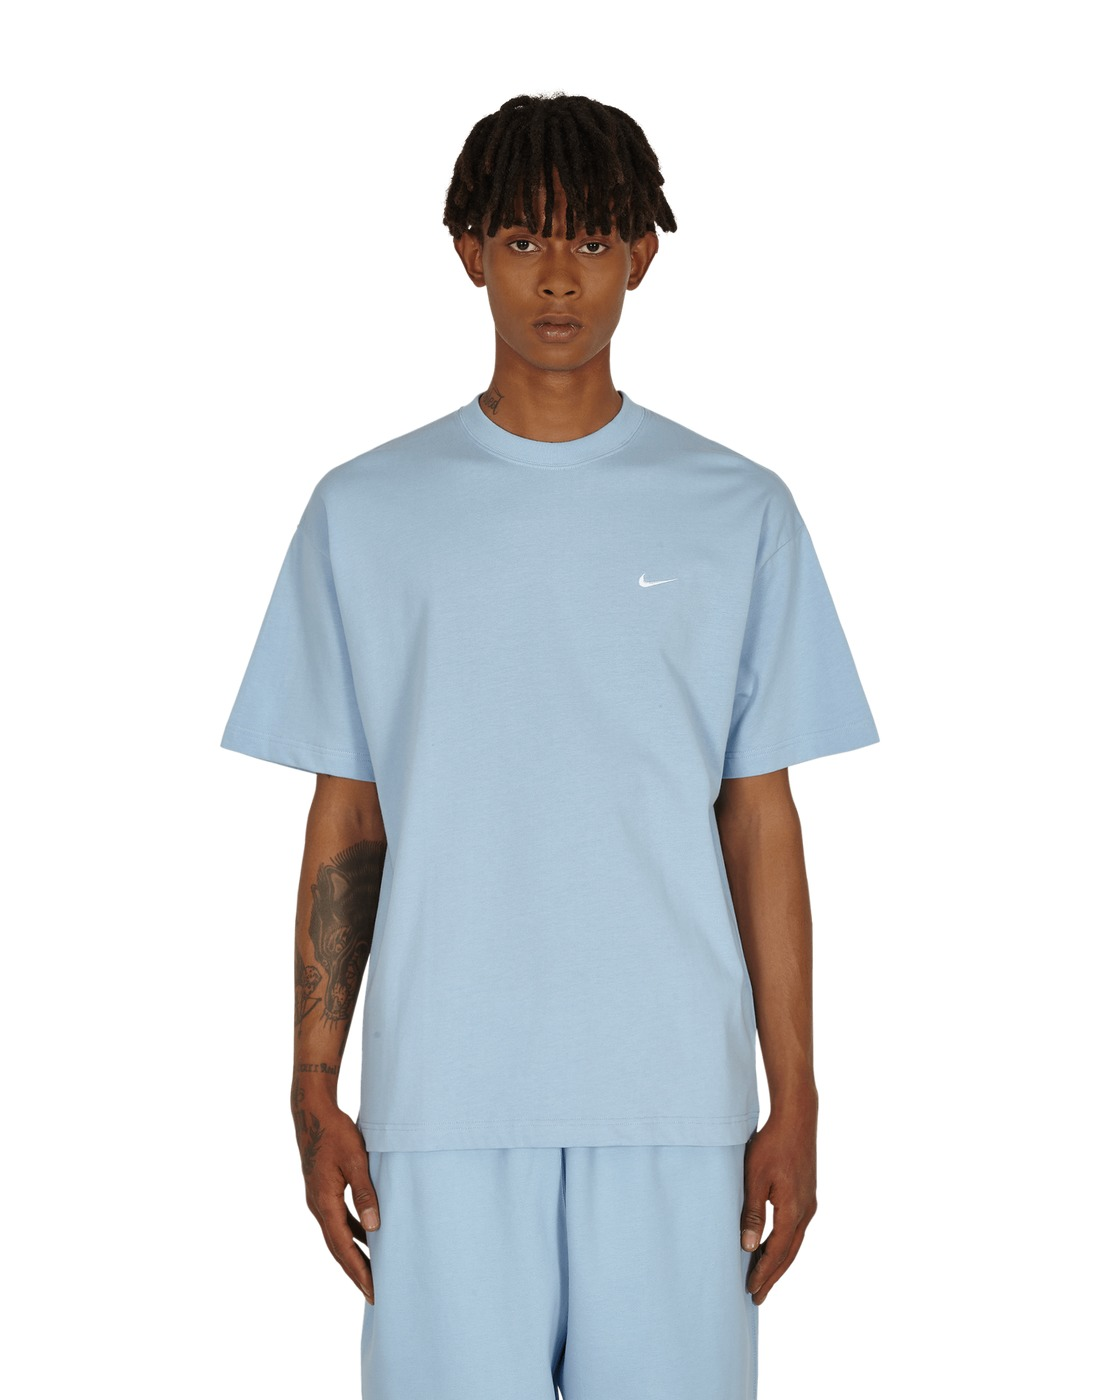 Nike Special Project Essential T Shirt Psychic Blue/White